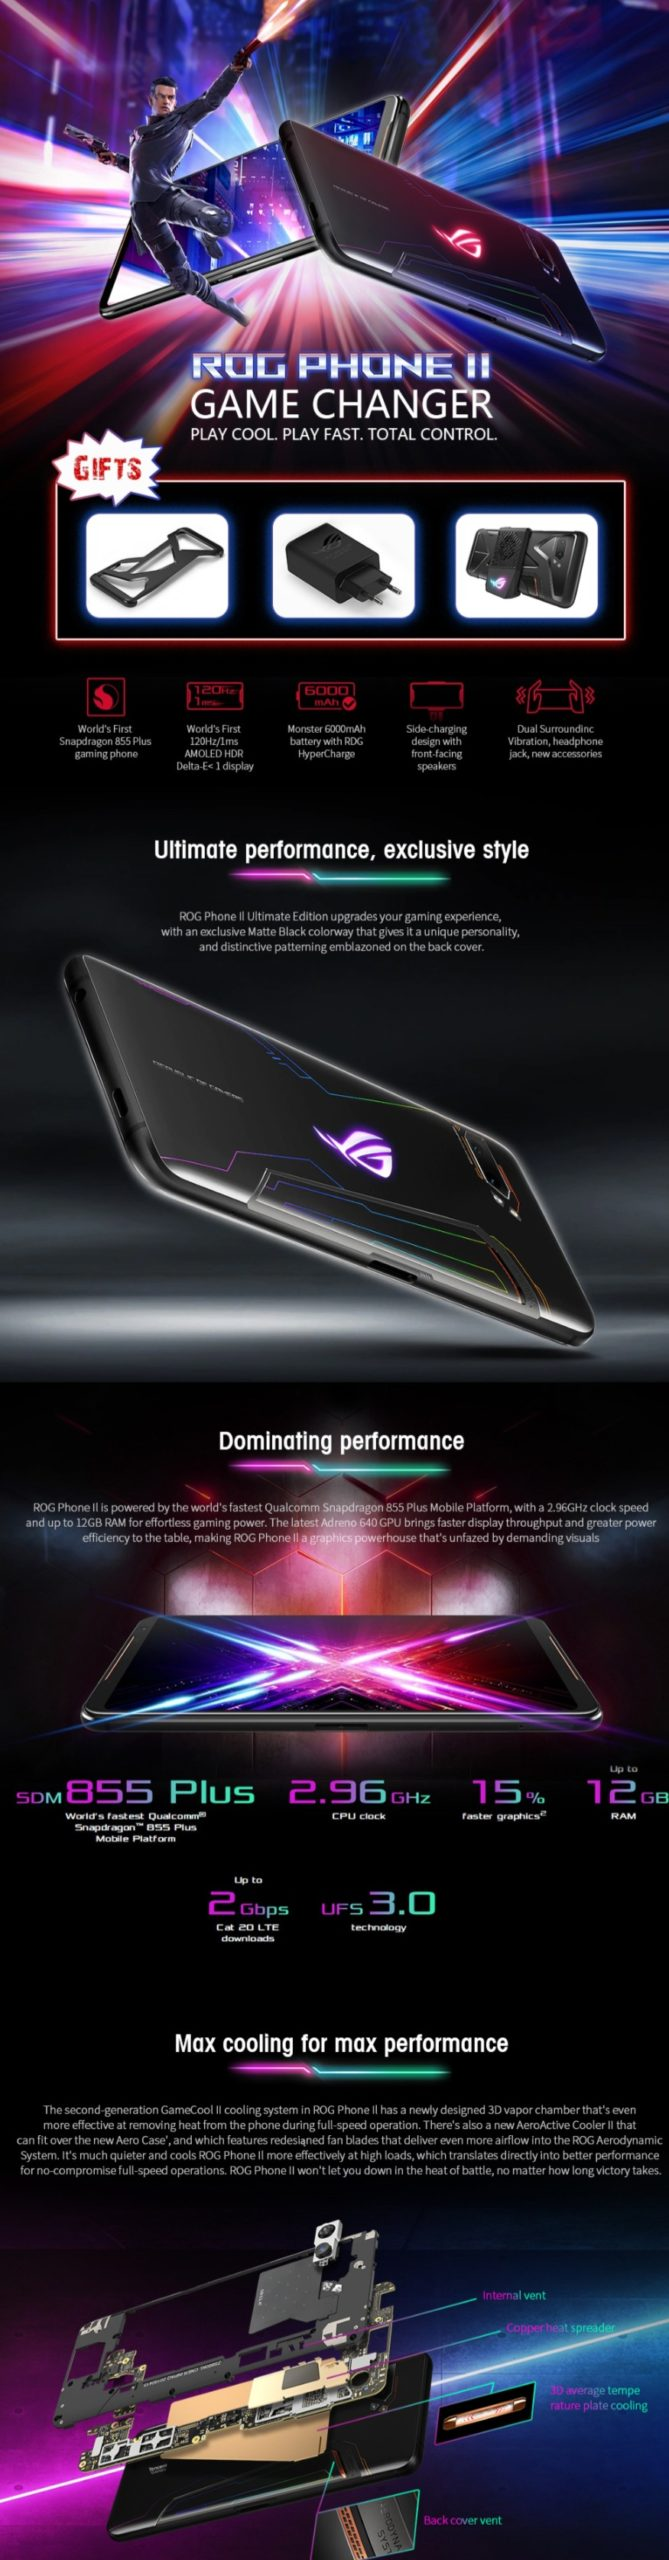 Black Friday Asus Sale - ASUS ROG Phone 2 Gaming 4G Smartphone